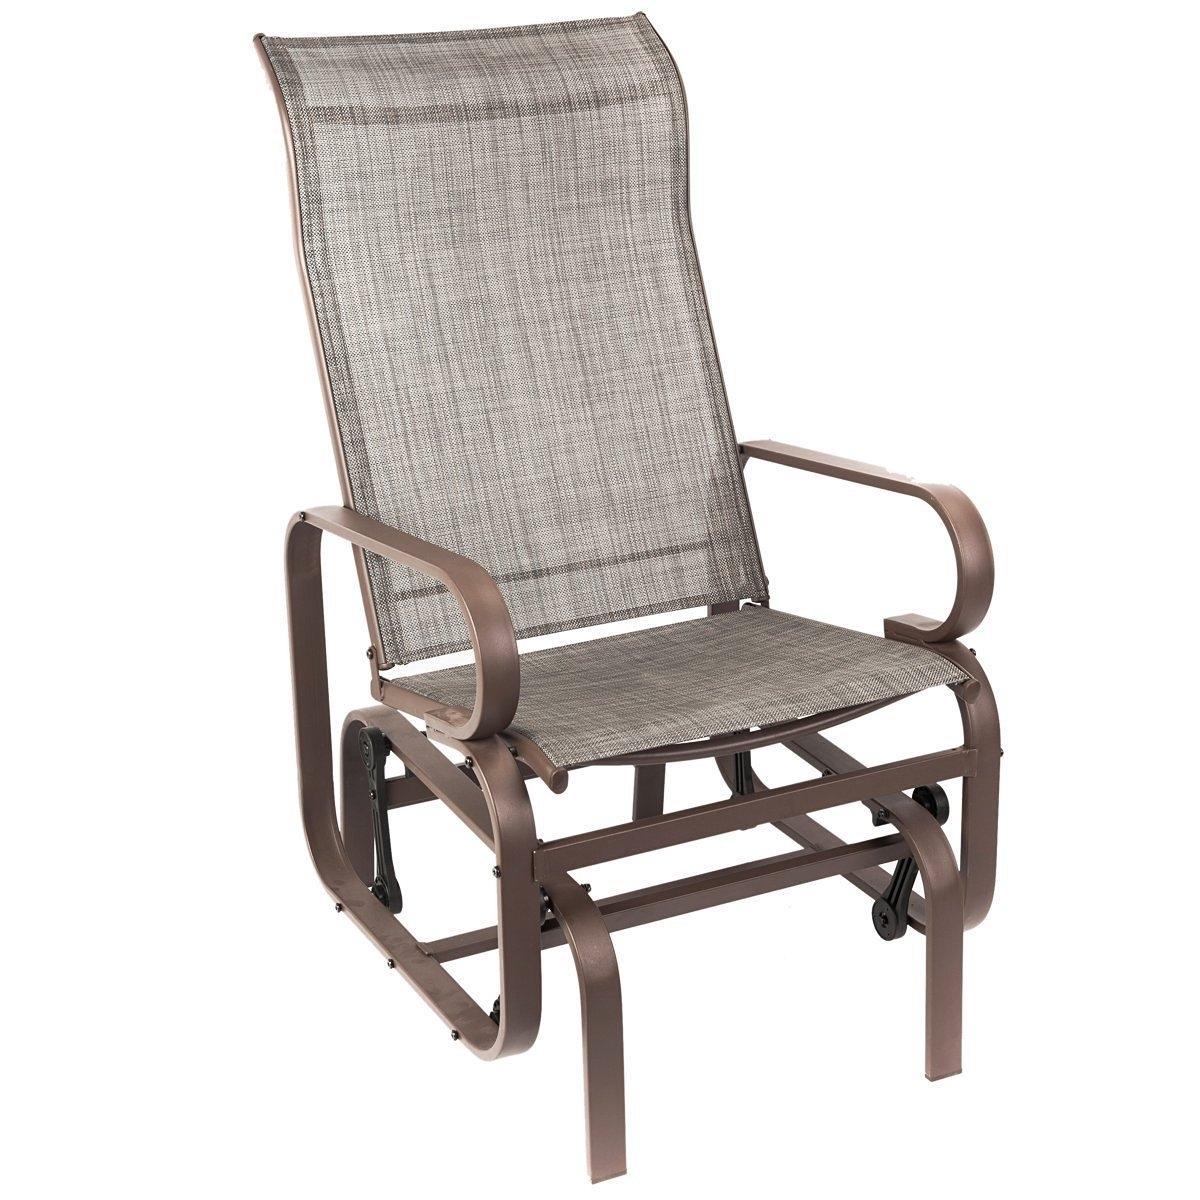 Rocking Chairs For Outdoors Inside Preferred Naturefun Outdoor Patio Rocker Chair, Balcony Glider Rocking Lounge (View 12 of 20)